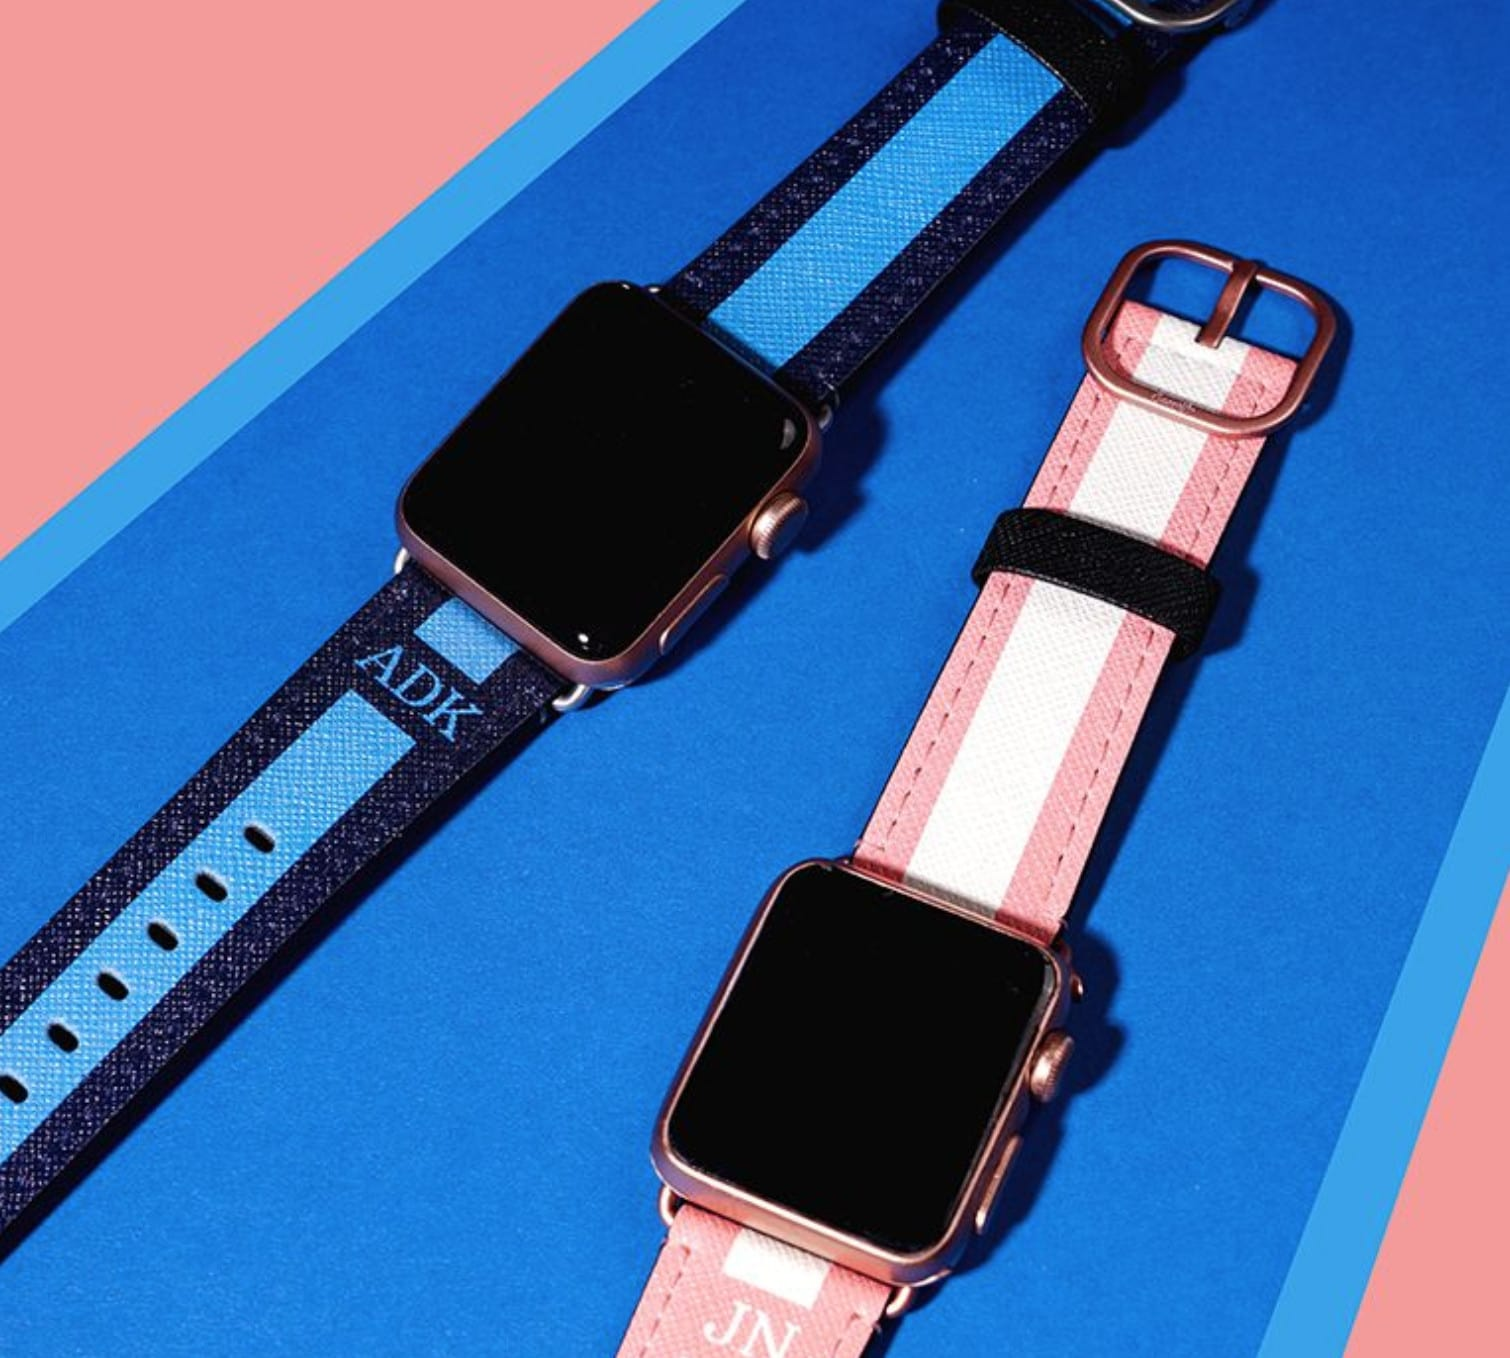 Casetify's saffiano leather printed bands pack a punch in style and durability.